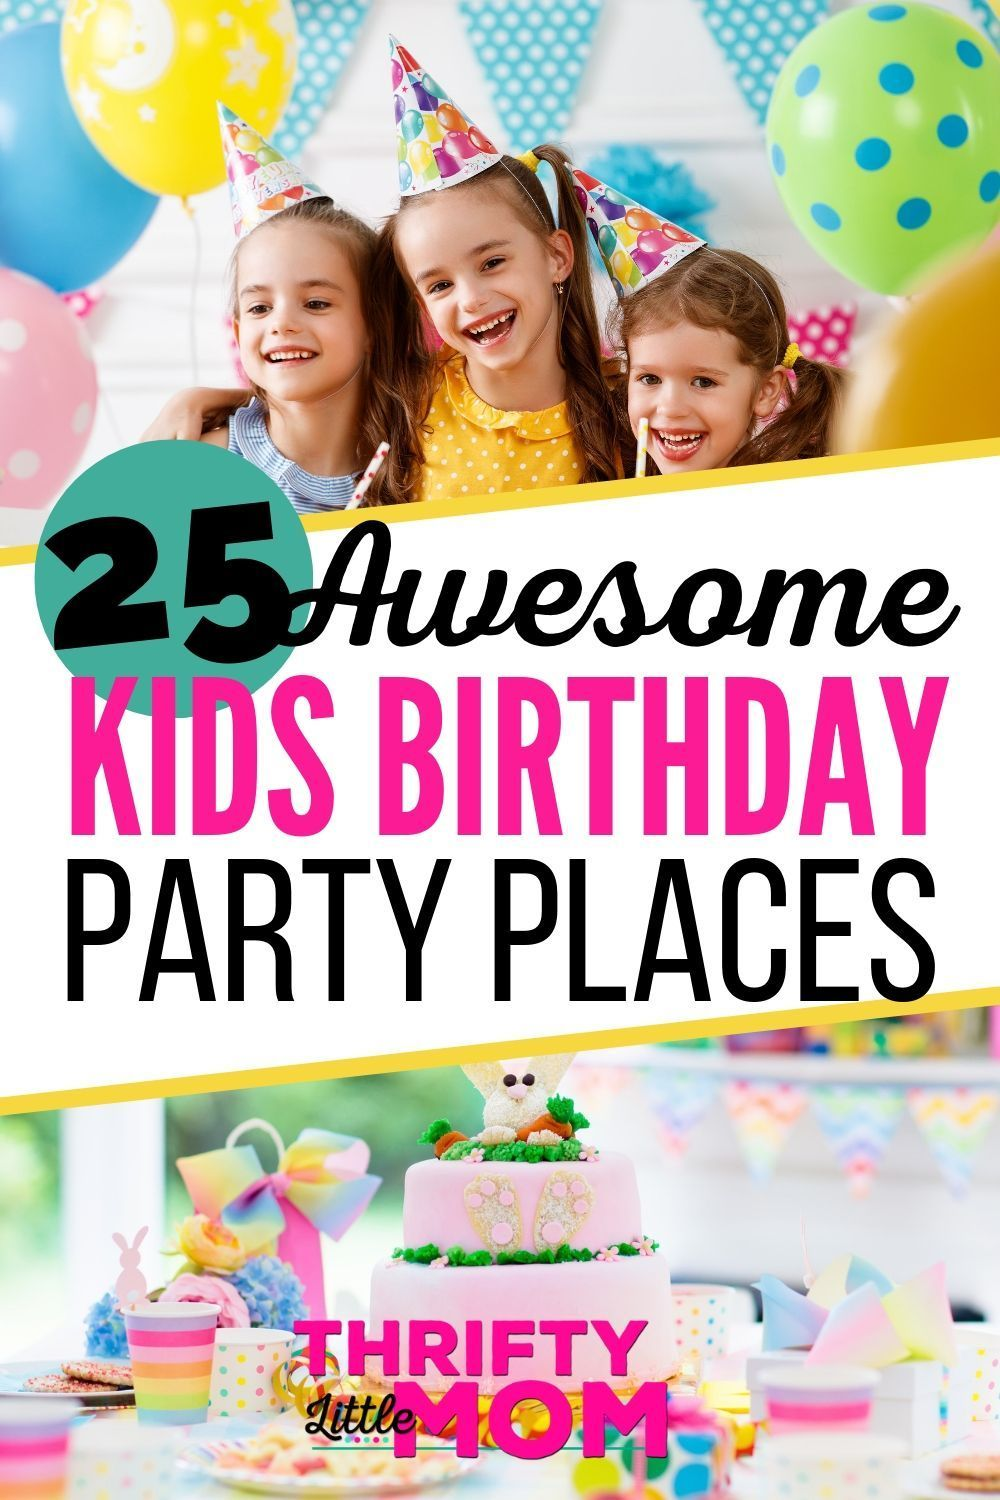 Birthday Party Places 25 That Your Kids Will Love With Images